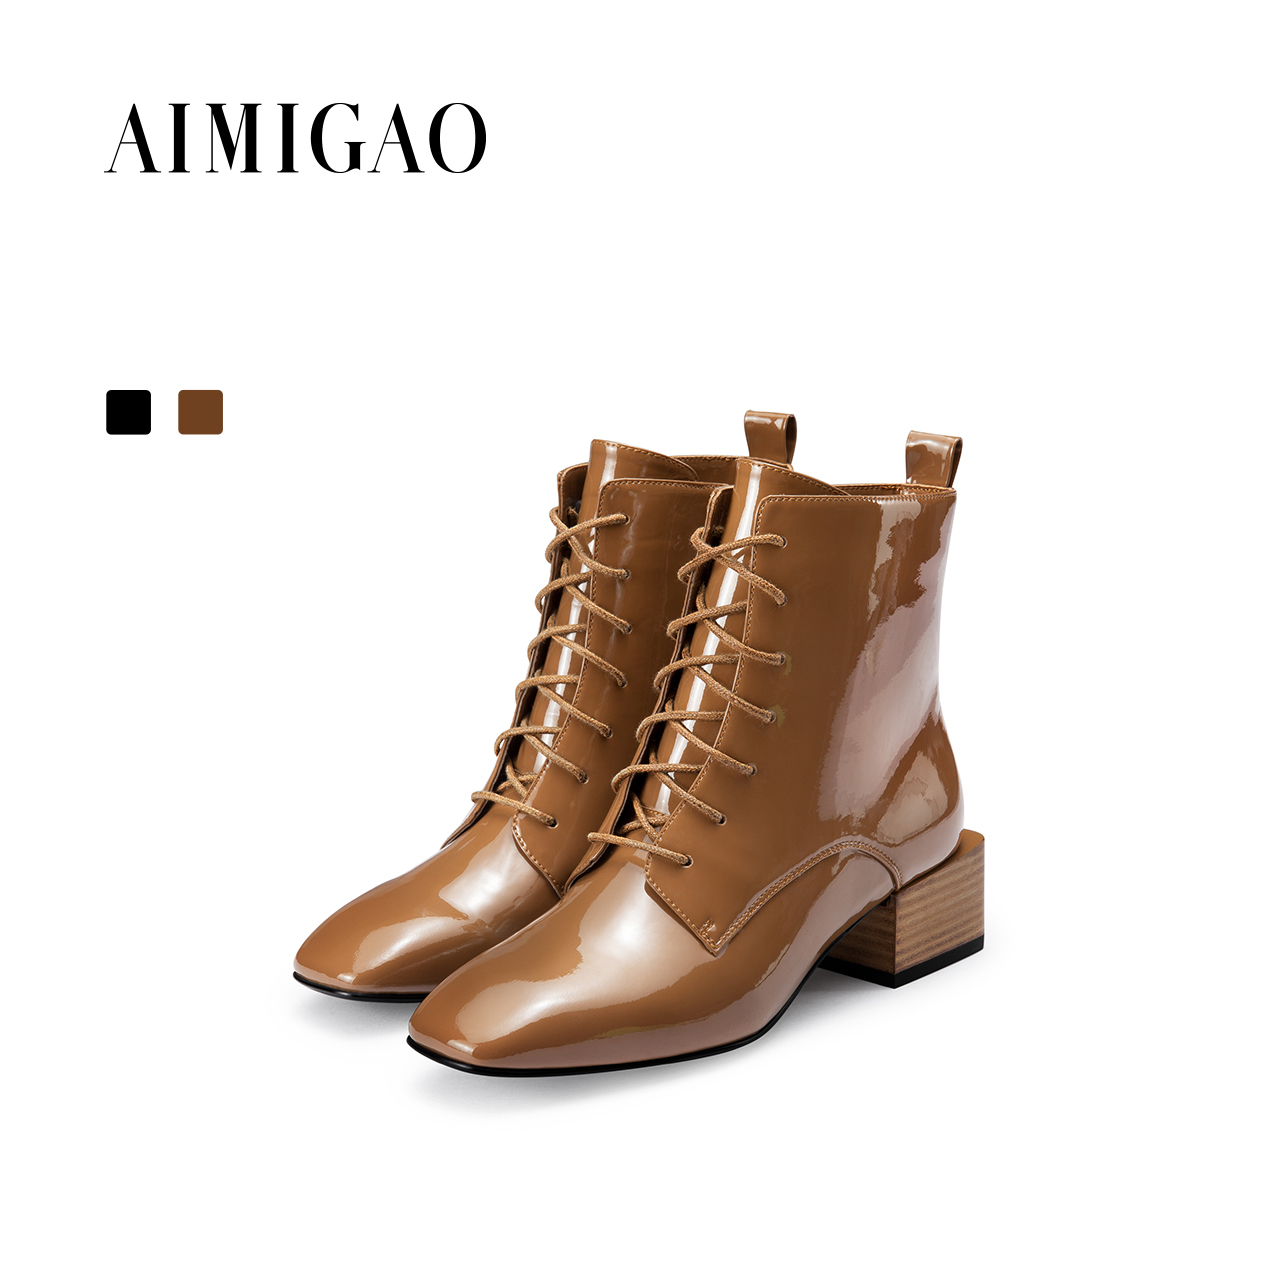 AIMIGAO Fashion Martin ankle boots 2017 autumn winter new Europe and the United States square toe block heel side zipper shoes 2017 newinferior smooth pointed high women s shoes with ankle boots fine low europe and the united states pointe